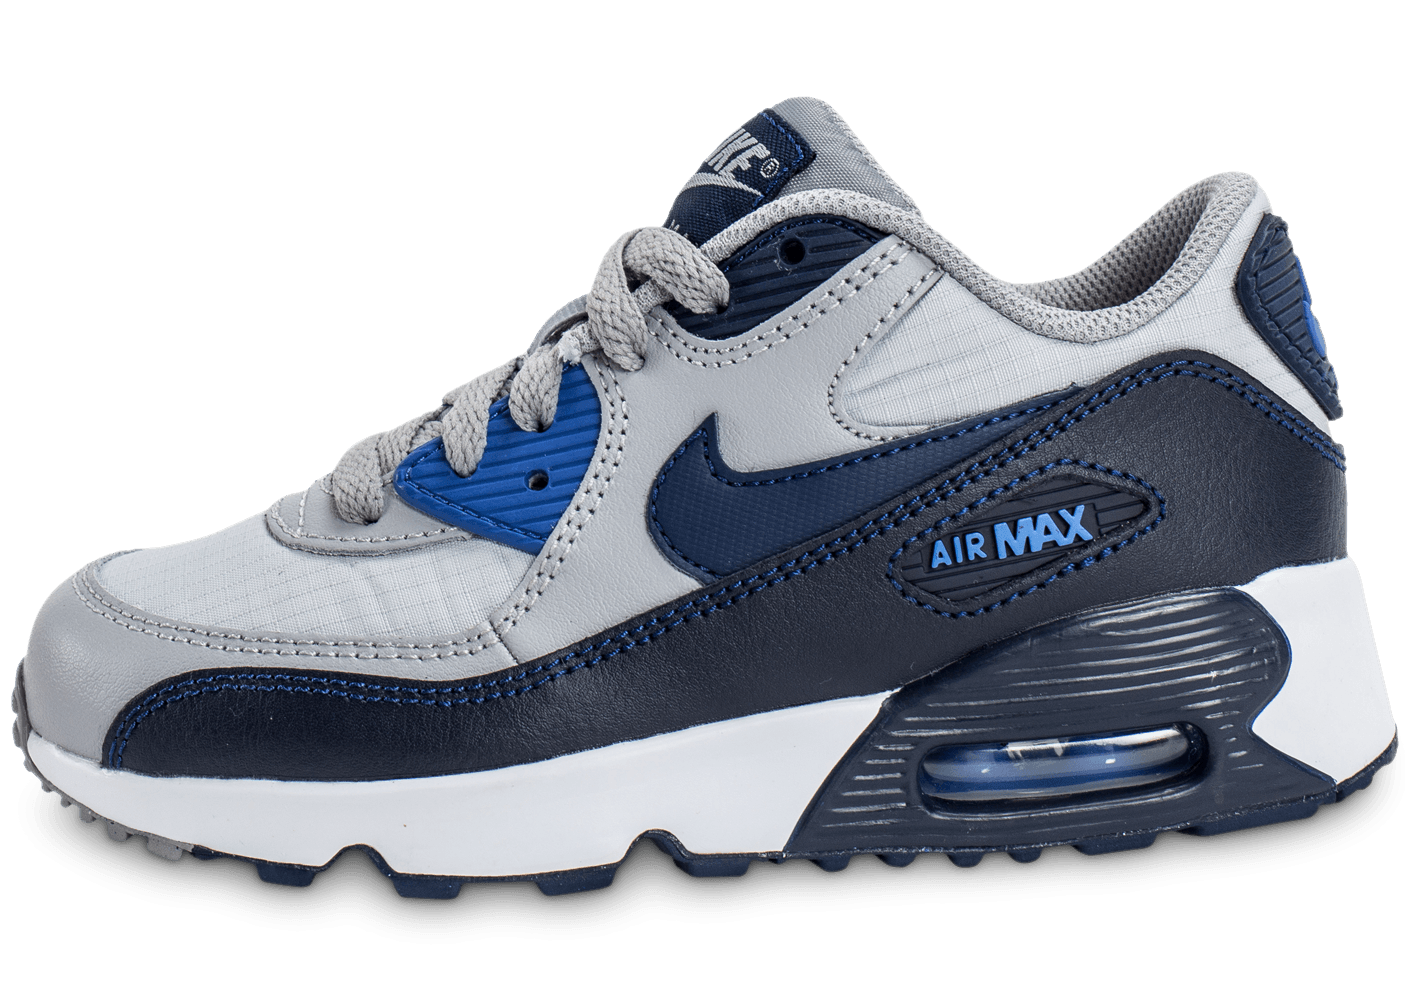 chaussures nike air max swag. Black Bedroom Furniture Sets. Home Design Ideas